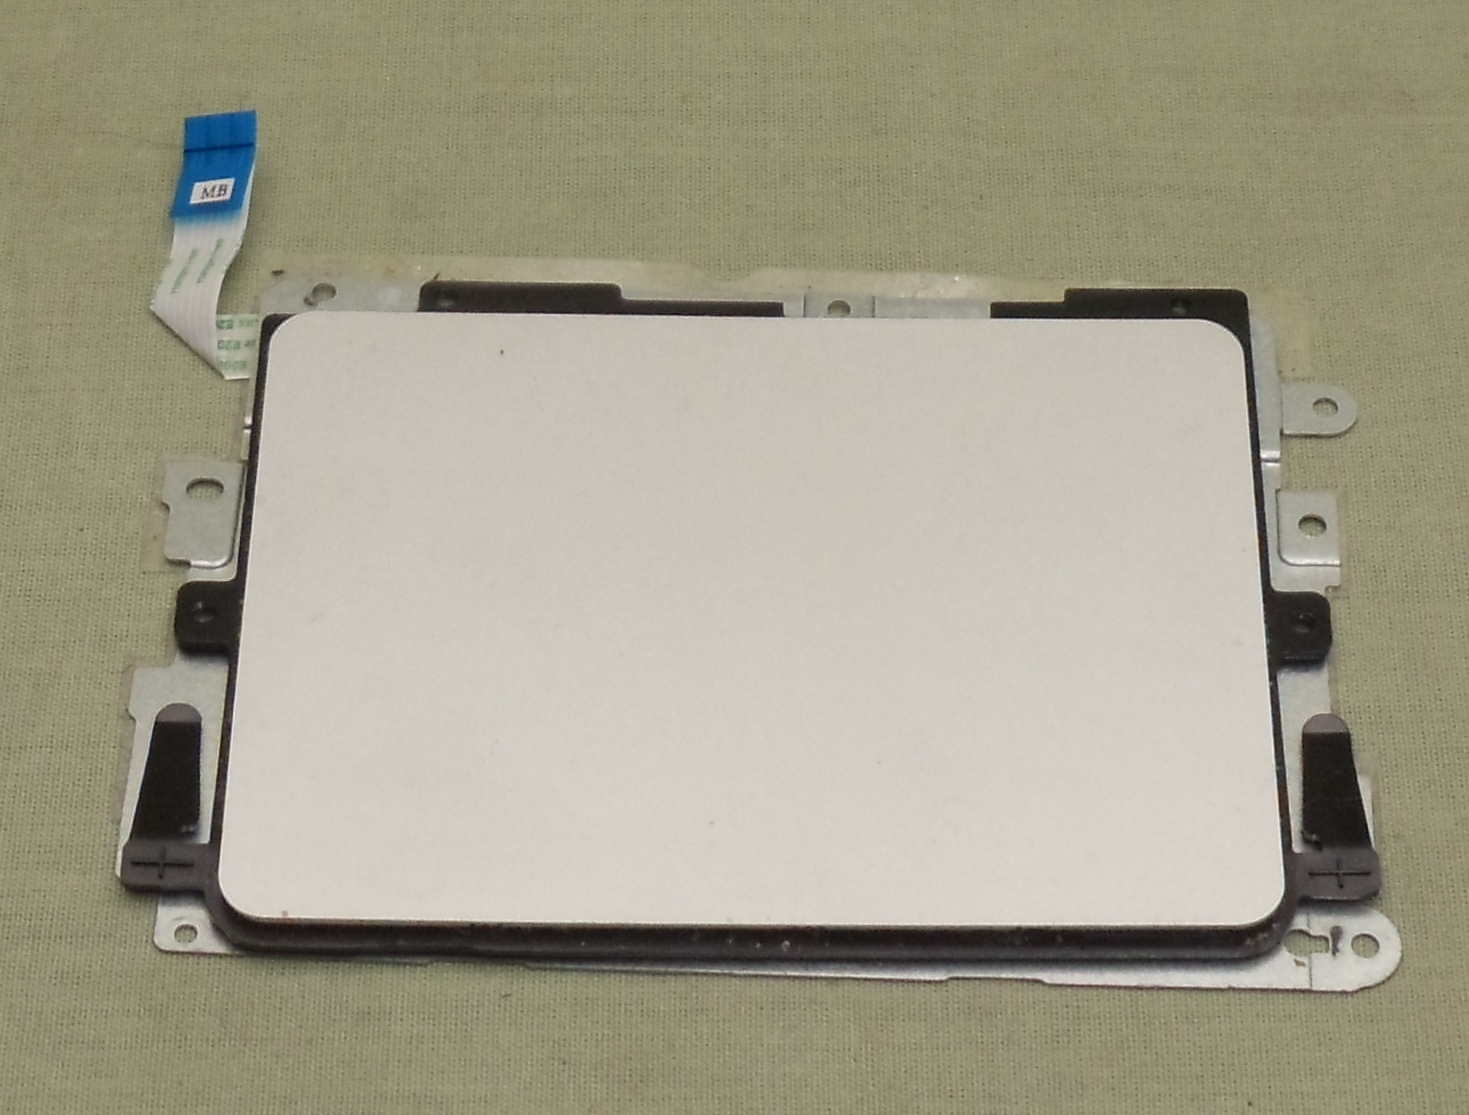 how to factory reset acer aspire v5 laptop